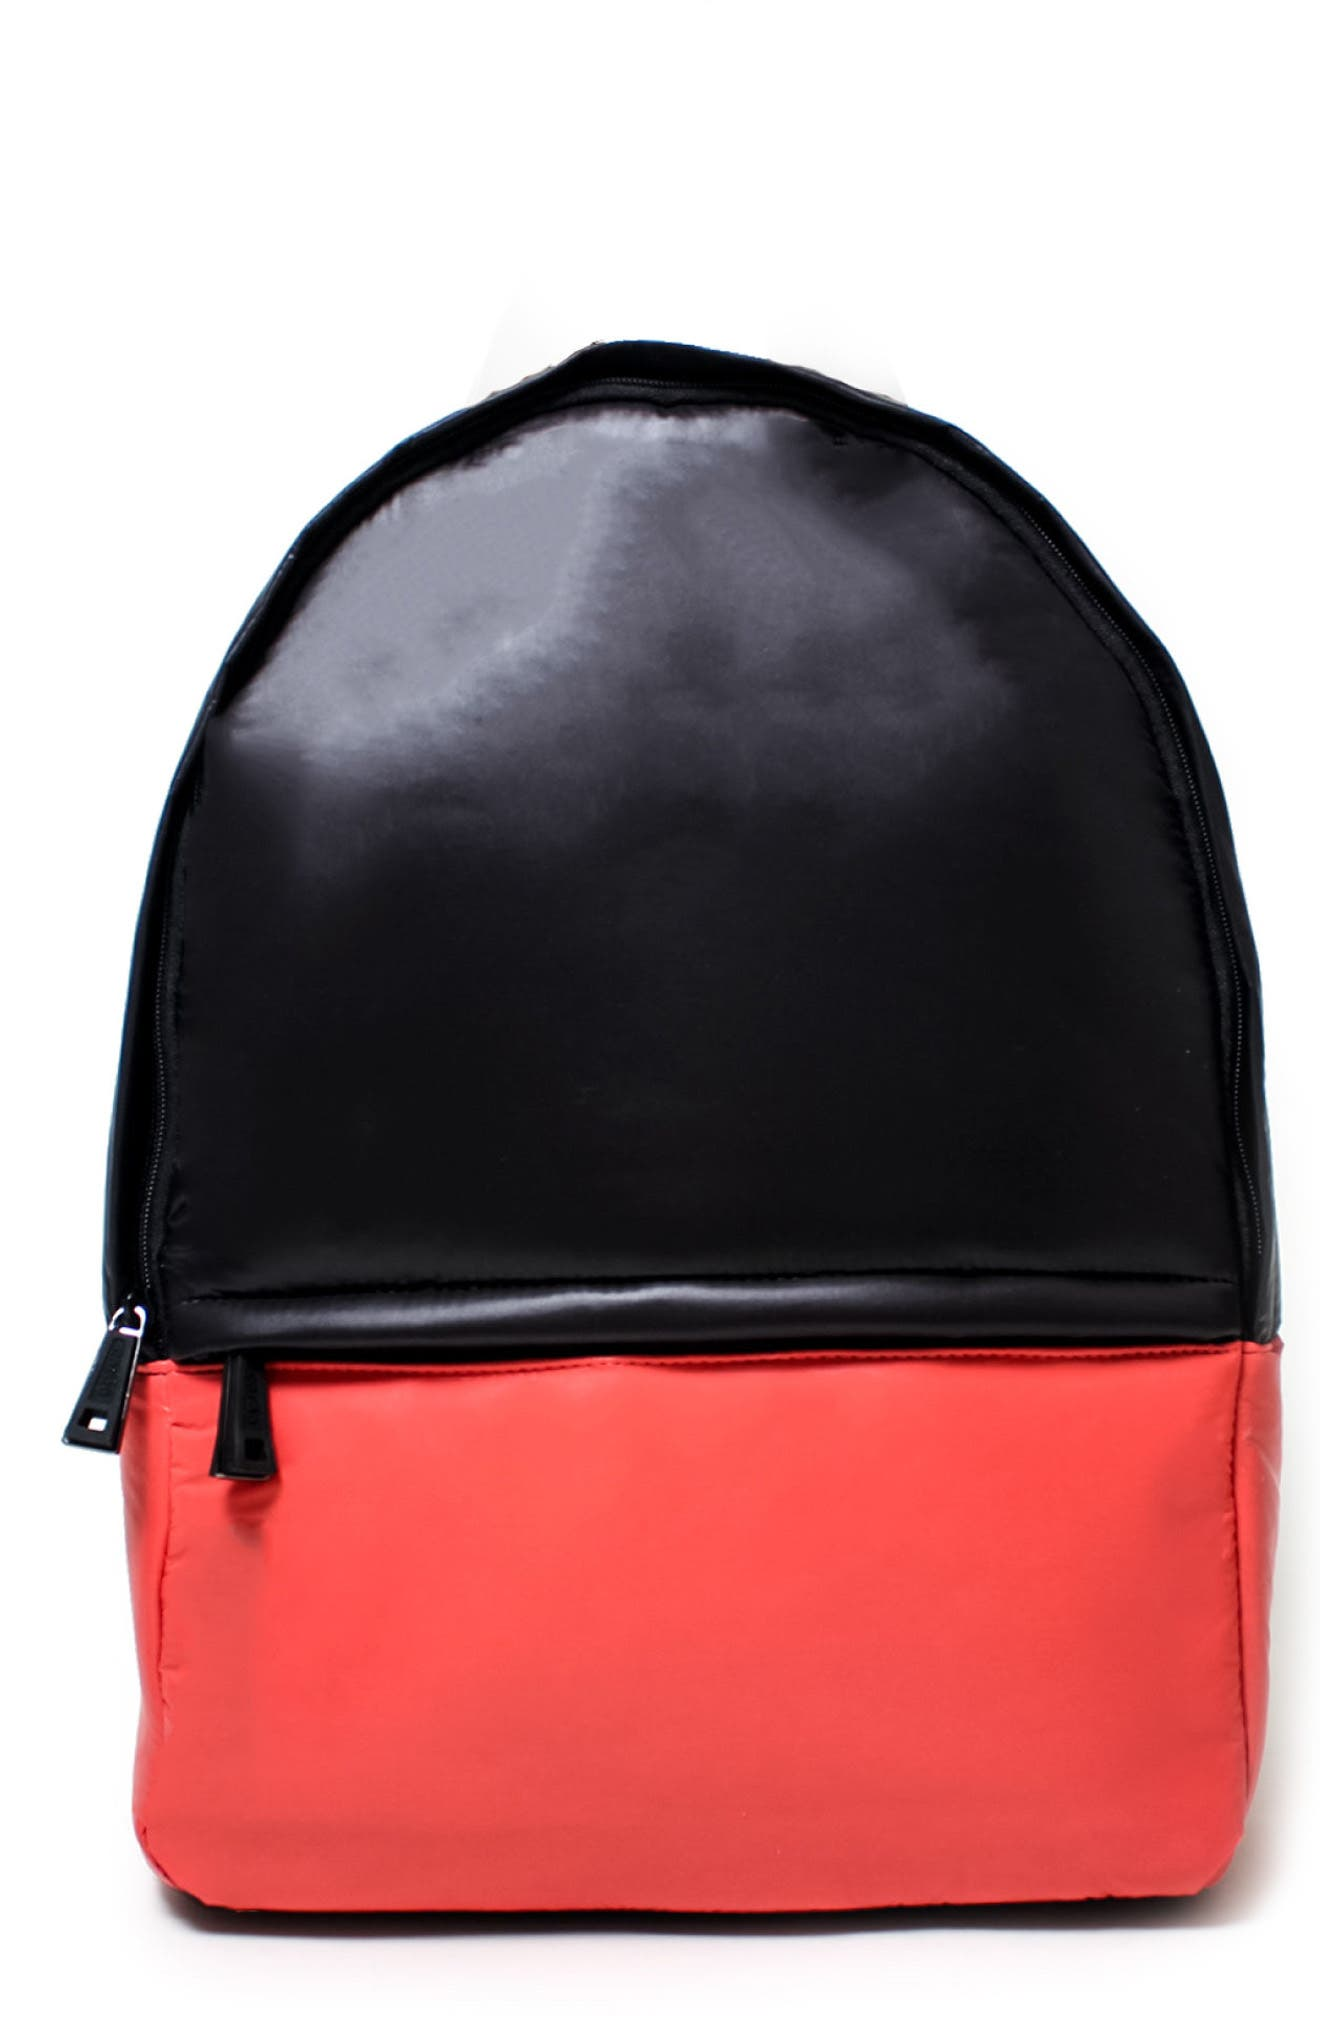 Alternate Image 1 Selected - Caraa Stratus Waterproof Backpack